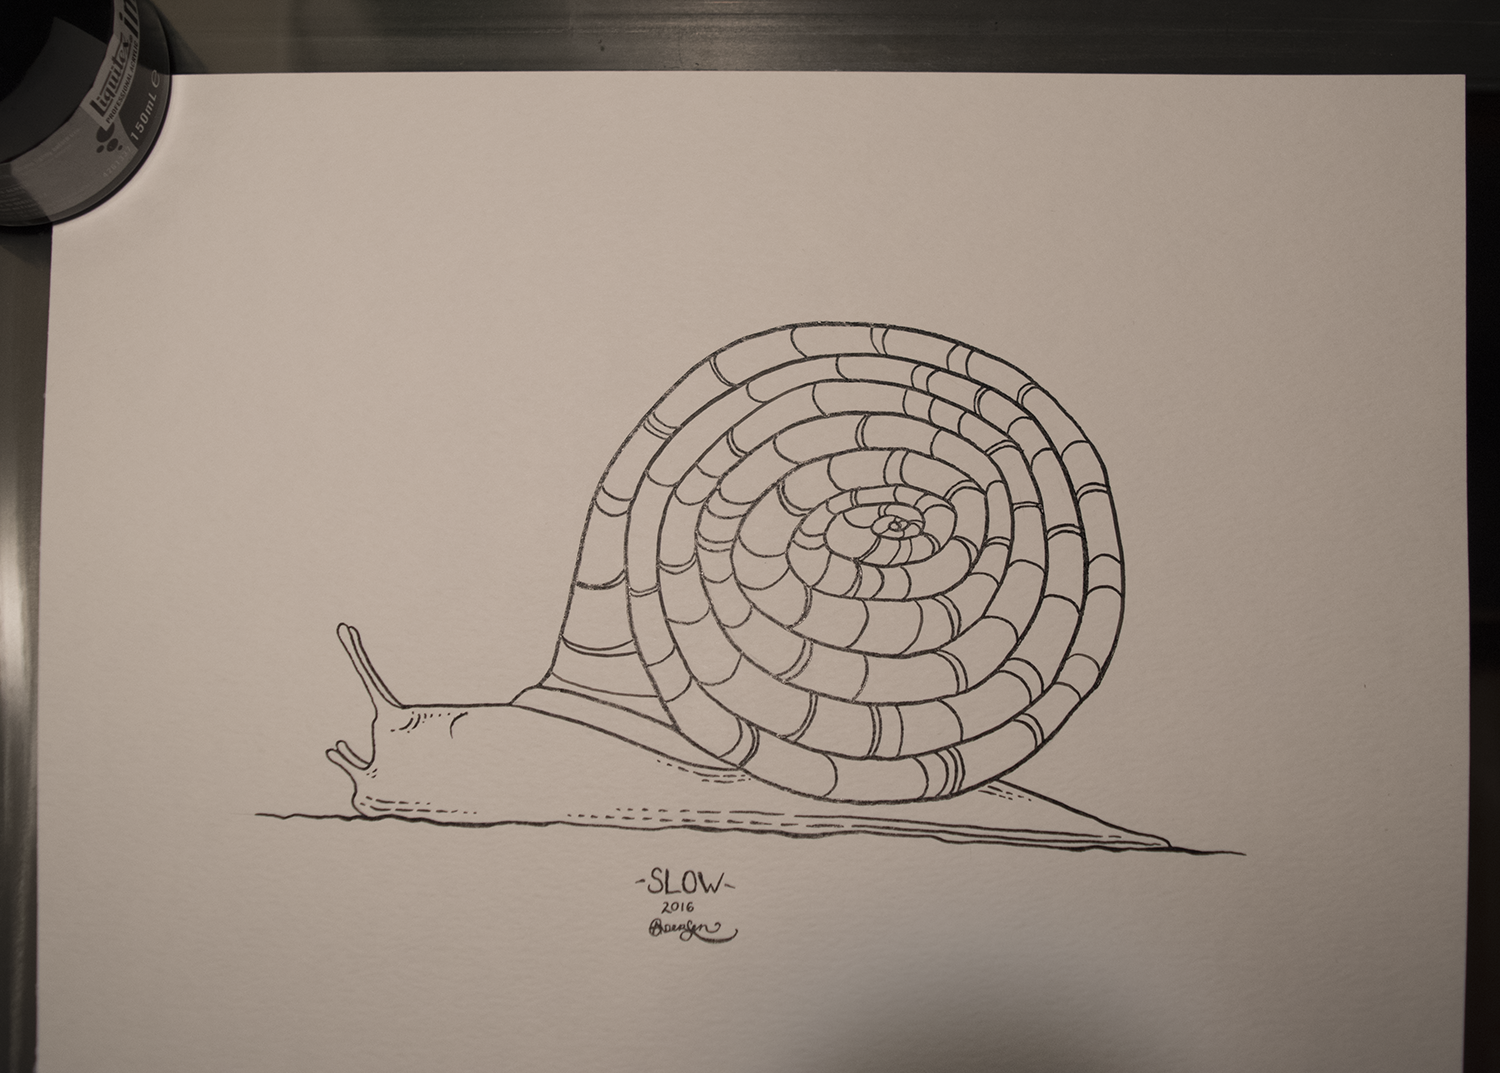 Original piece as shown (apologies for the shadow at the bottom), black ink on white 90lb paper, 9x12